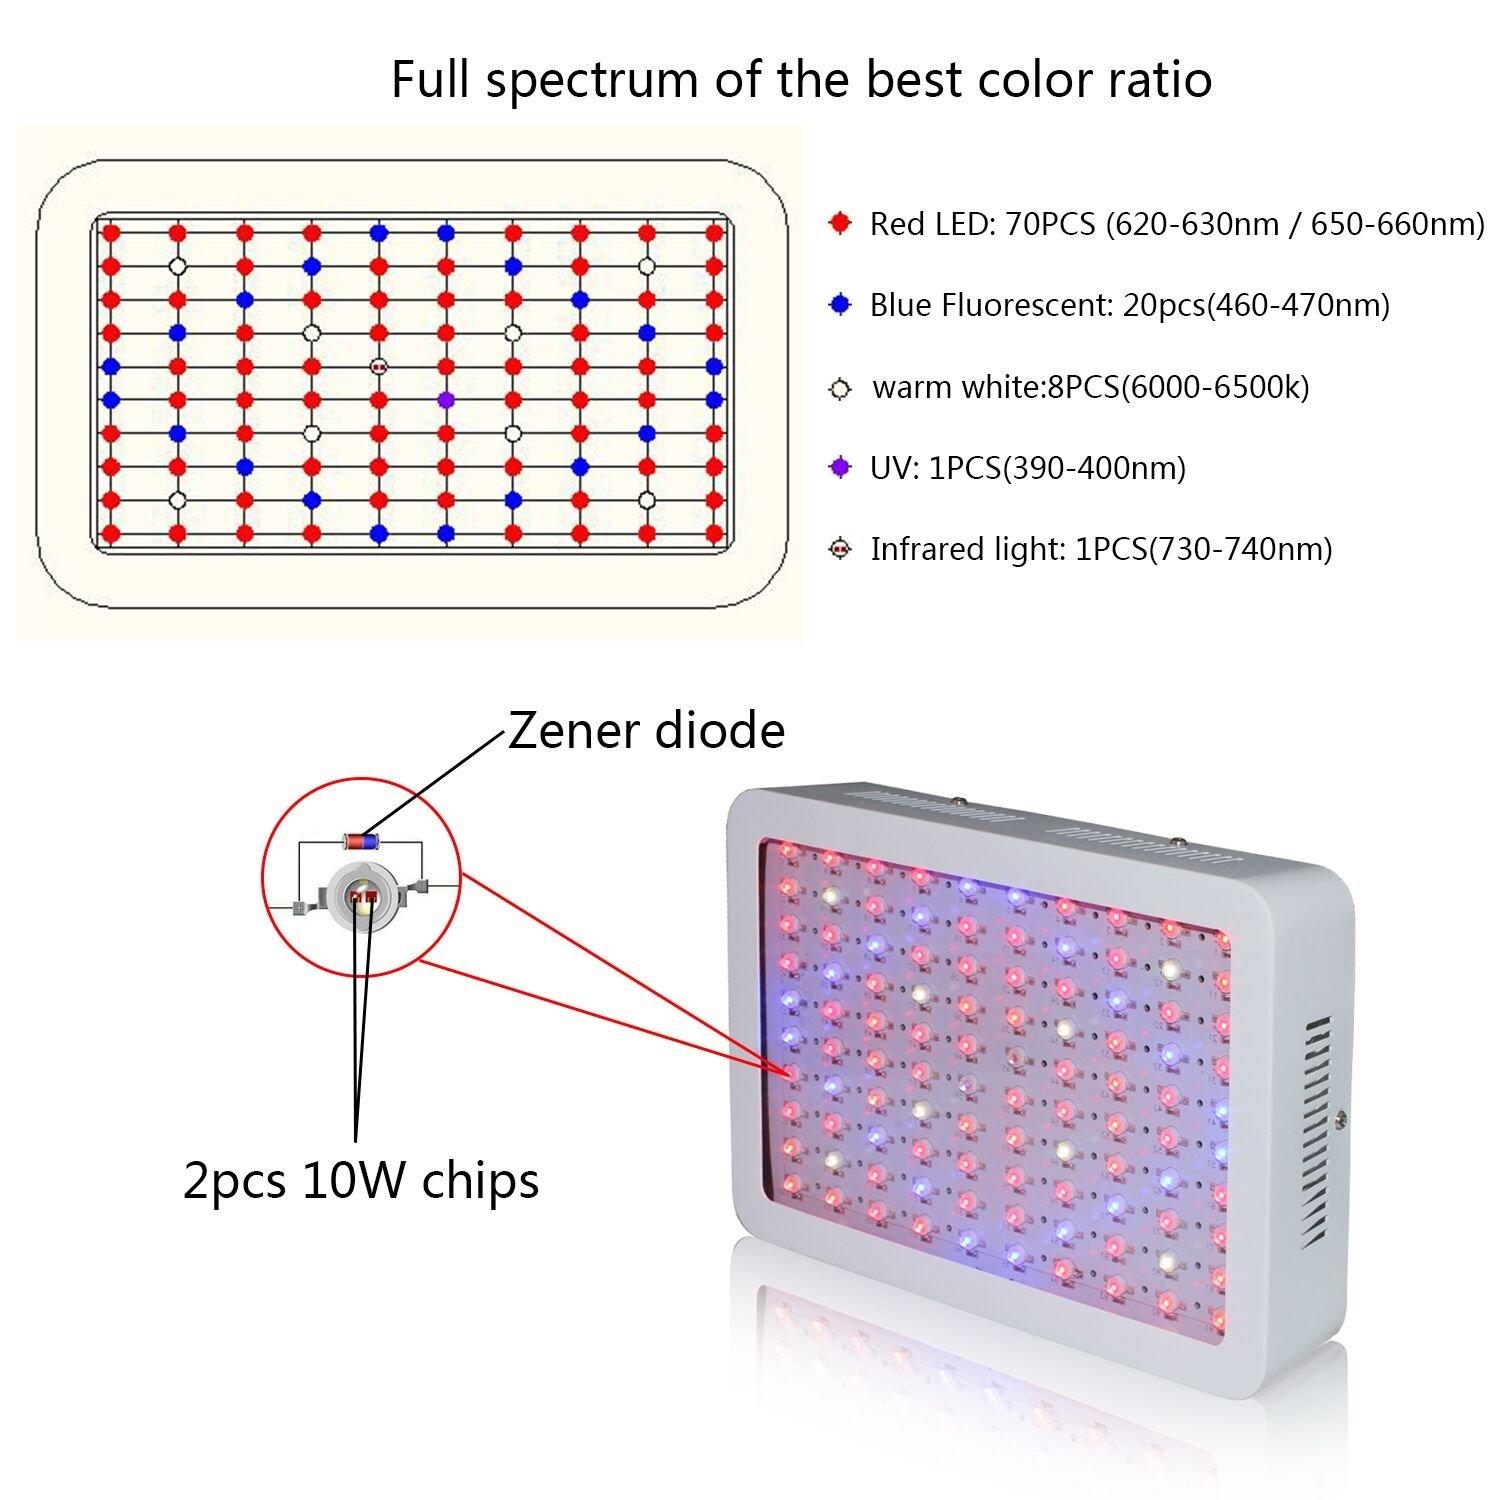 RYSA LIGHT LED Indoor Grow Light 1000W Full Spectrum Double Chips Growing Lamps with UV IR for Garden Plants Veg Flower Hydroponic Greenhouse by RYSA LIGHT (Image #8)